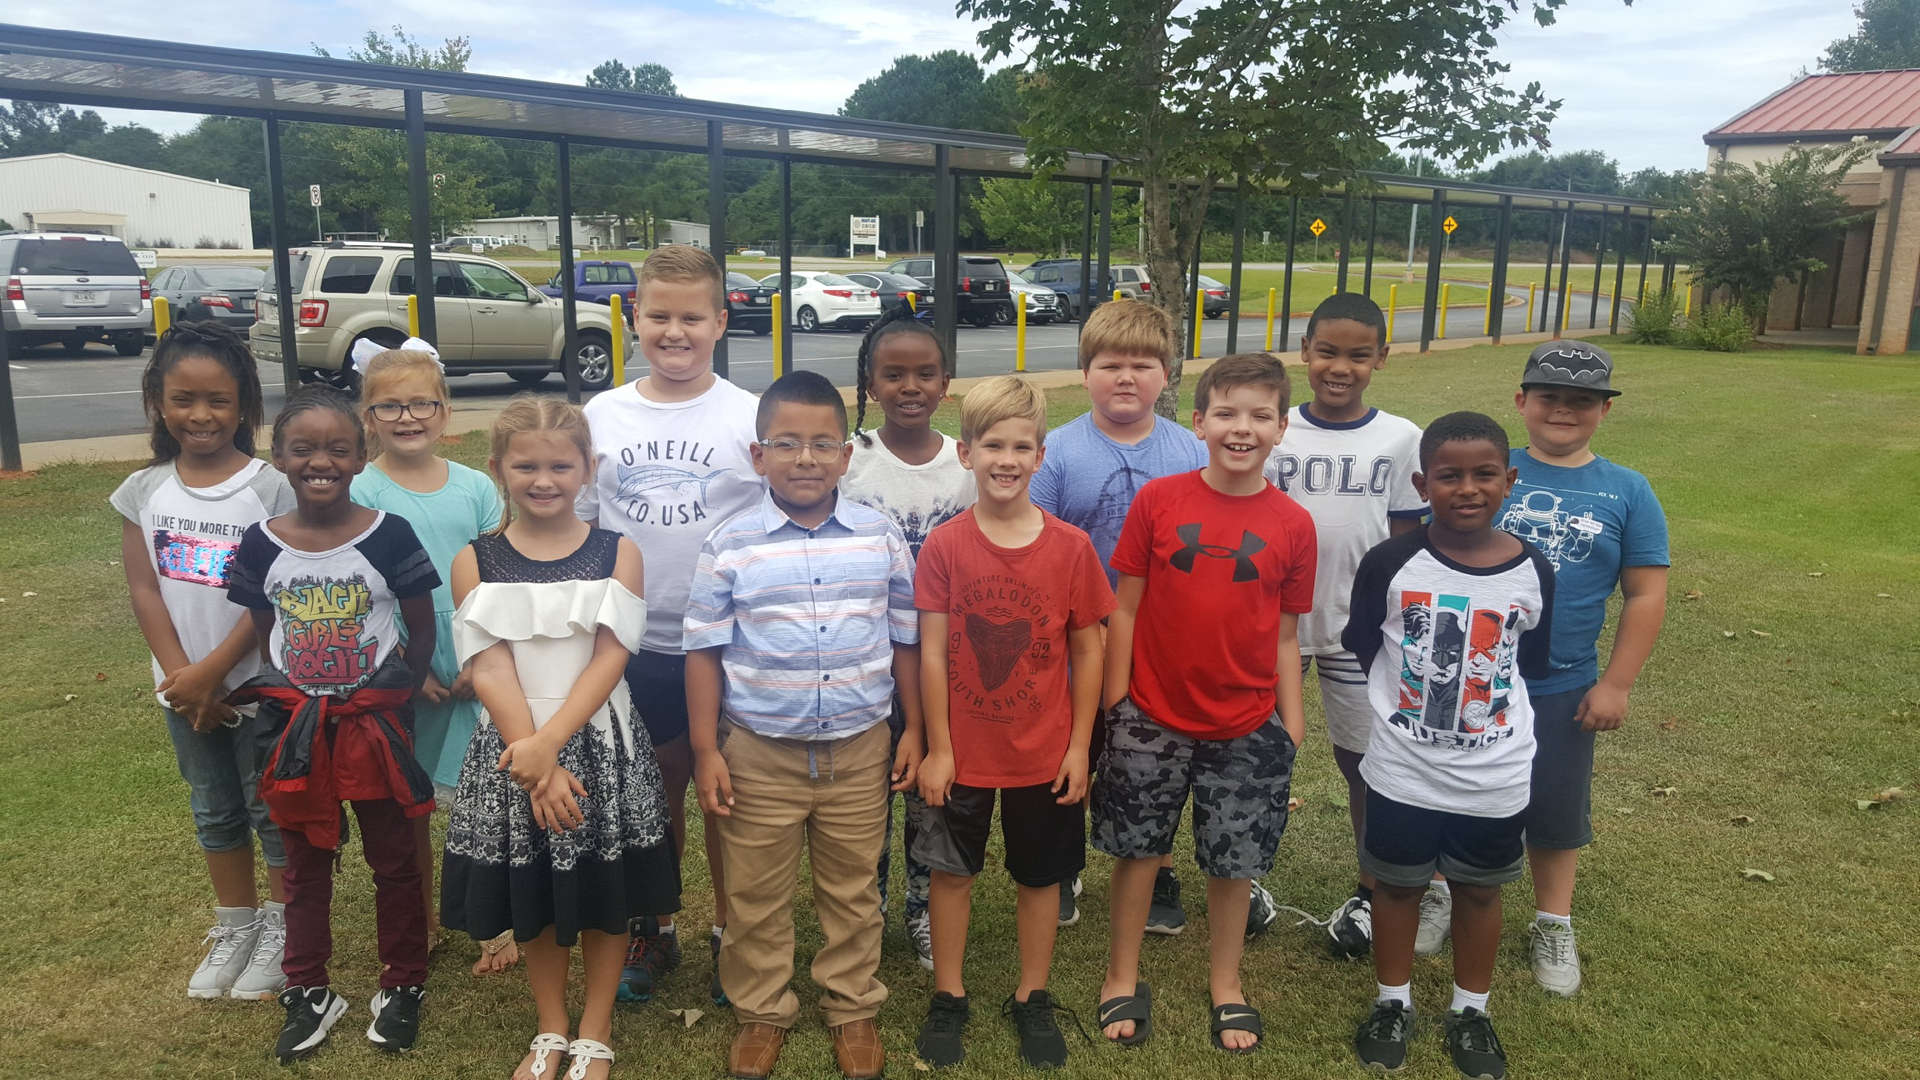 Back Row: Jalaci Blasingame, Emme Goens, Ethan Evans, Asia Jones, Eli Stitcher, Kelton Denson, Klayton Bridges Front Row: Summer Peeples, Madison Lee, Damian Morales, Landon Sears, Jackson Adams, Evan Turner